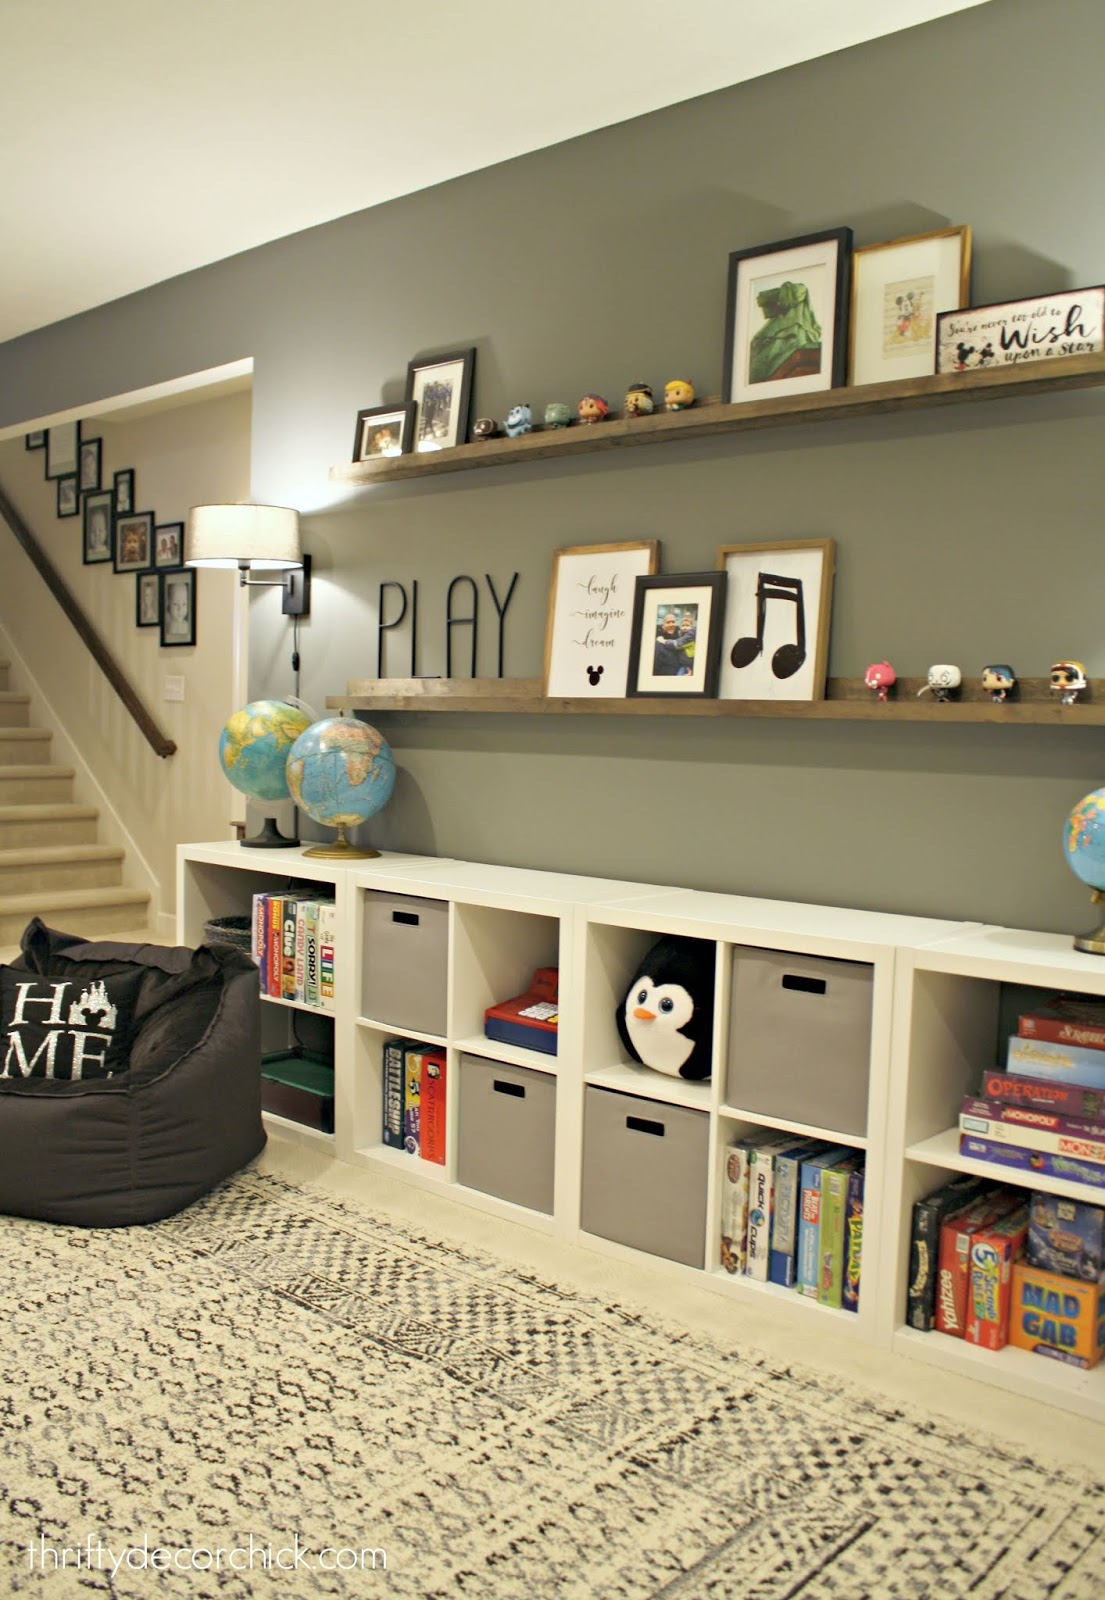 Game storage wall for kid space or basement